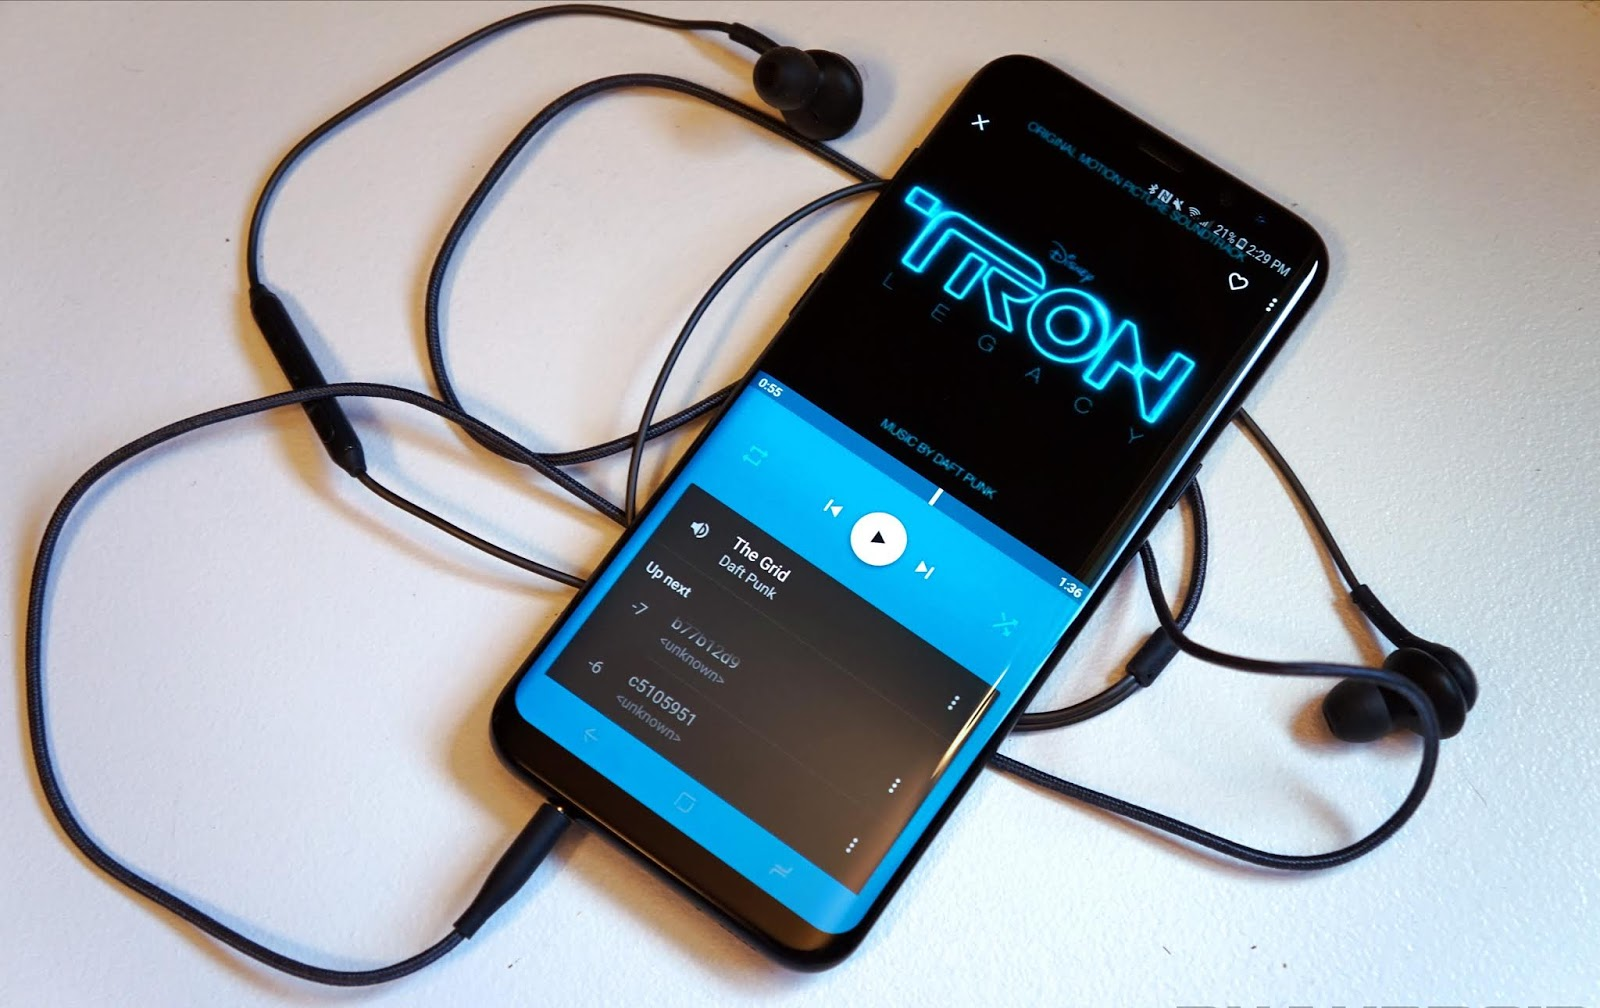 How To Quickly Enhance Your Android Phone's Speakers Using Four Easy Steps In 2mins